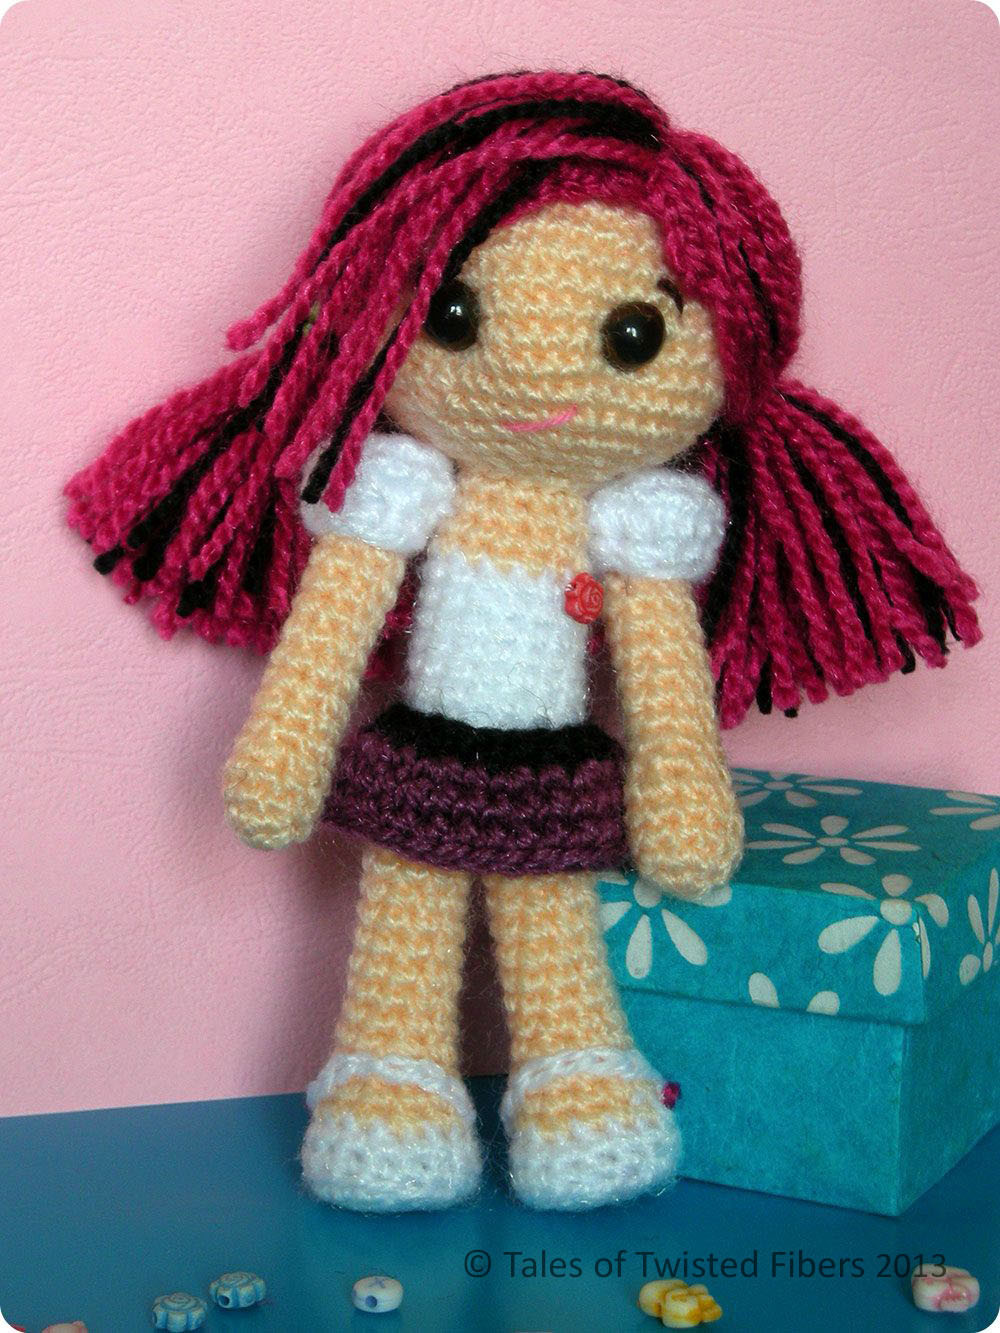 Doll Patterns Beautiful Amy the Amigurumi Doll Free Pattern – Tales Of Twisted Fibers Of Doll Patterns Best Of My Rag Doll Adorable Dolls to Sew